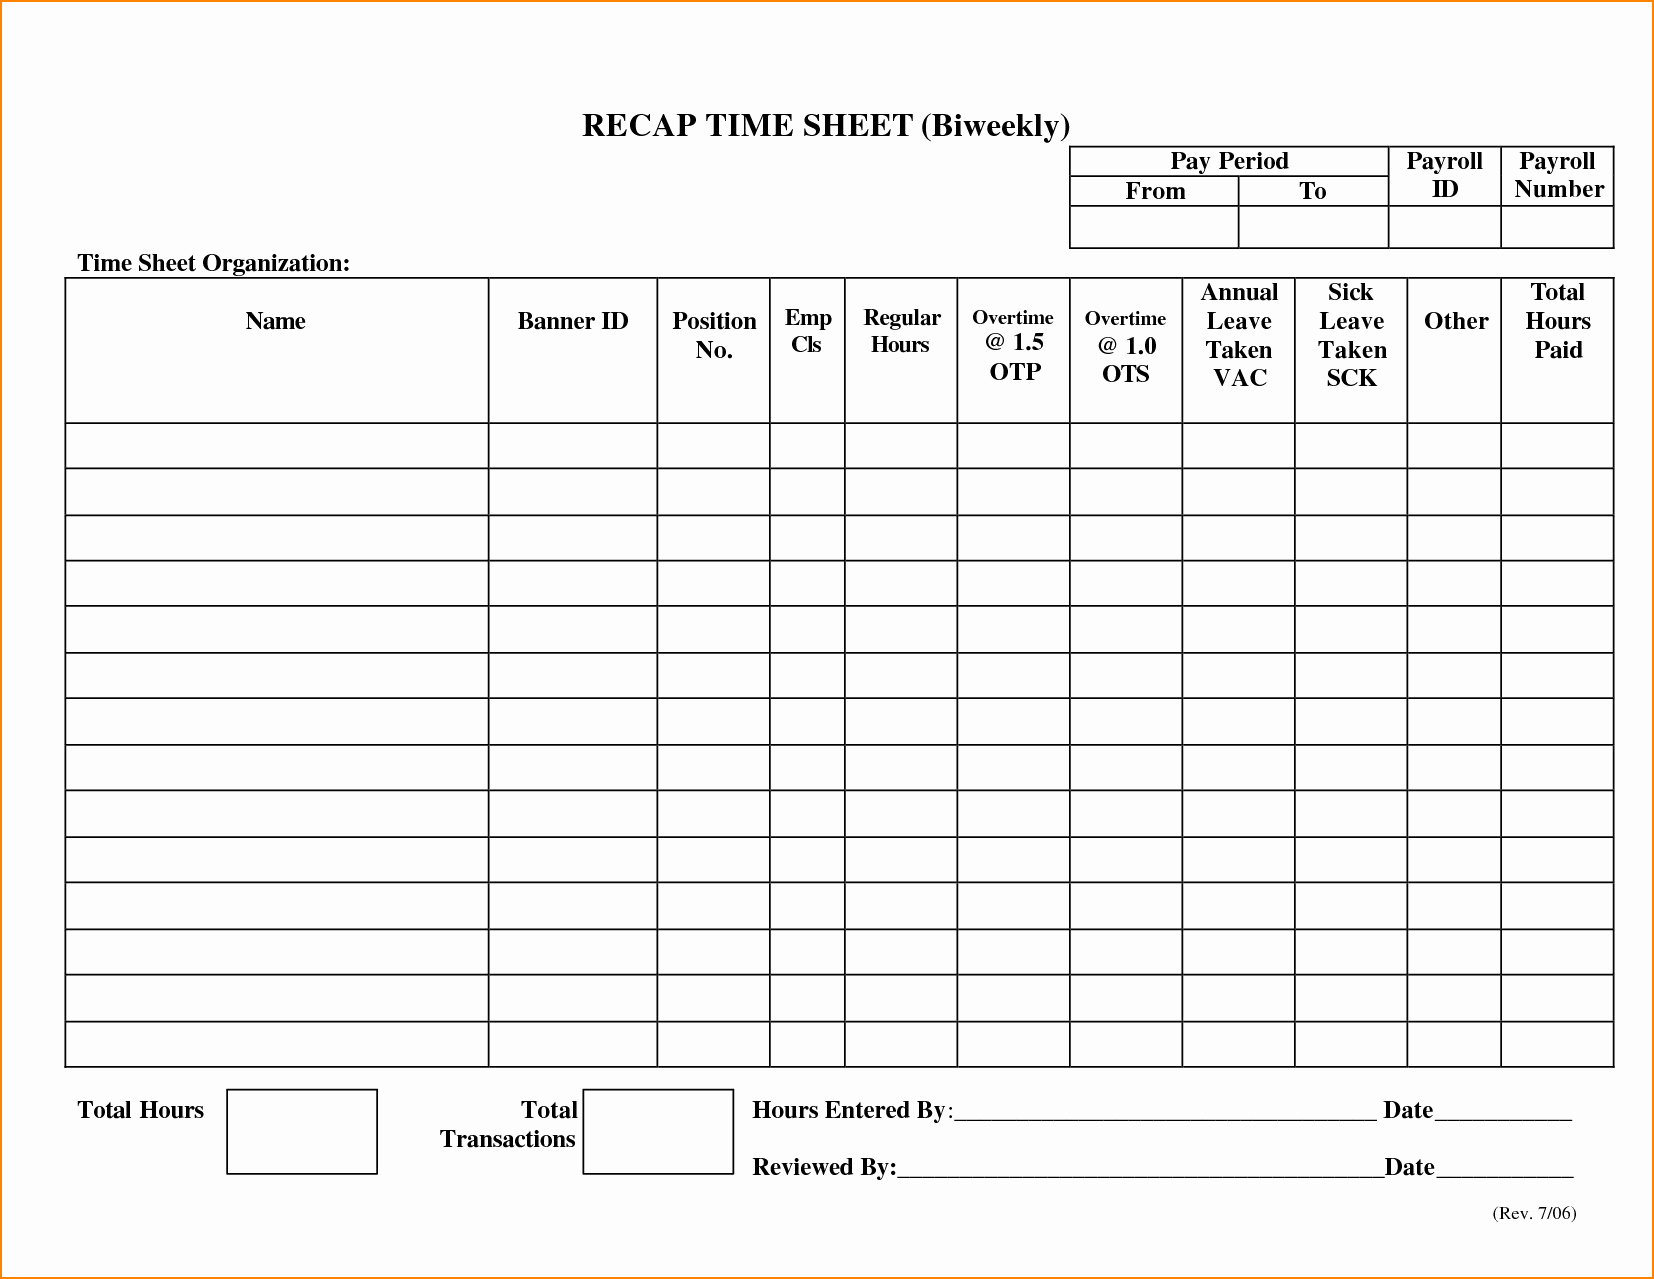 Employee Sign In Sheets Elegant 5 Payroll Sign Off Sheet